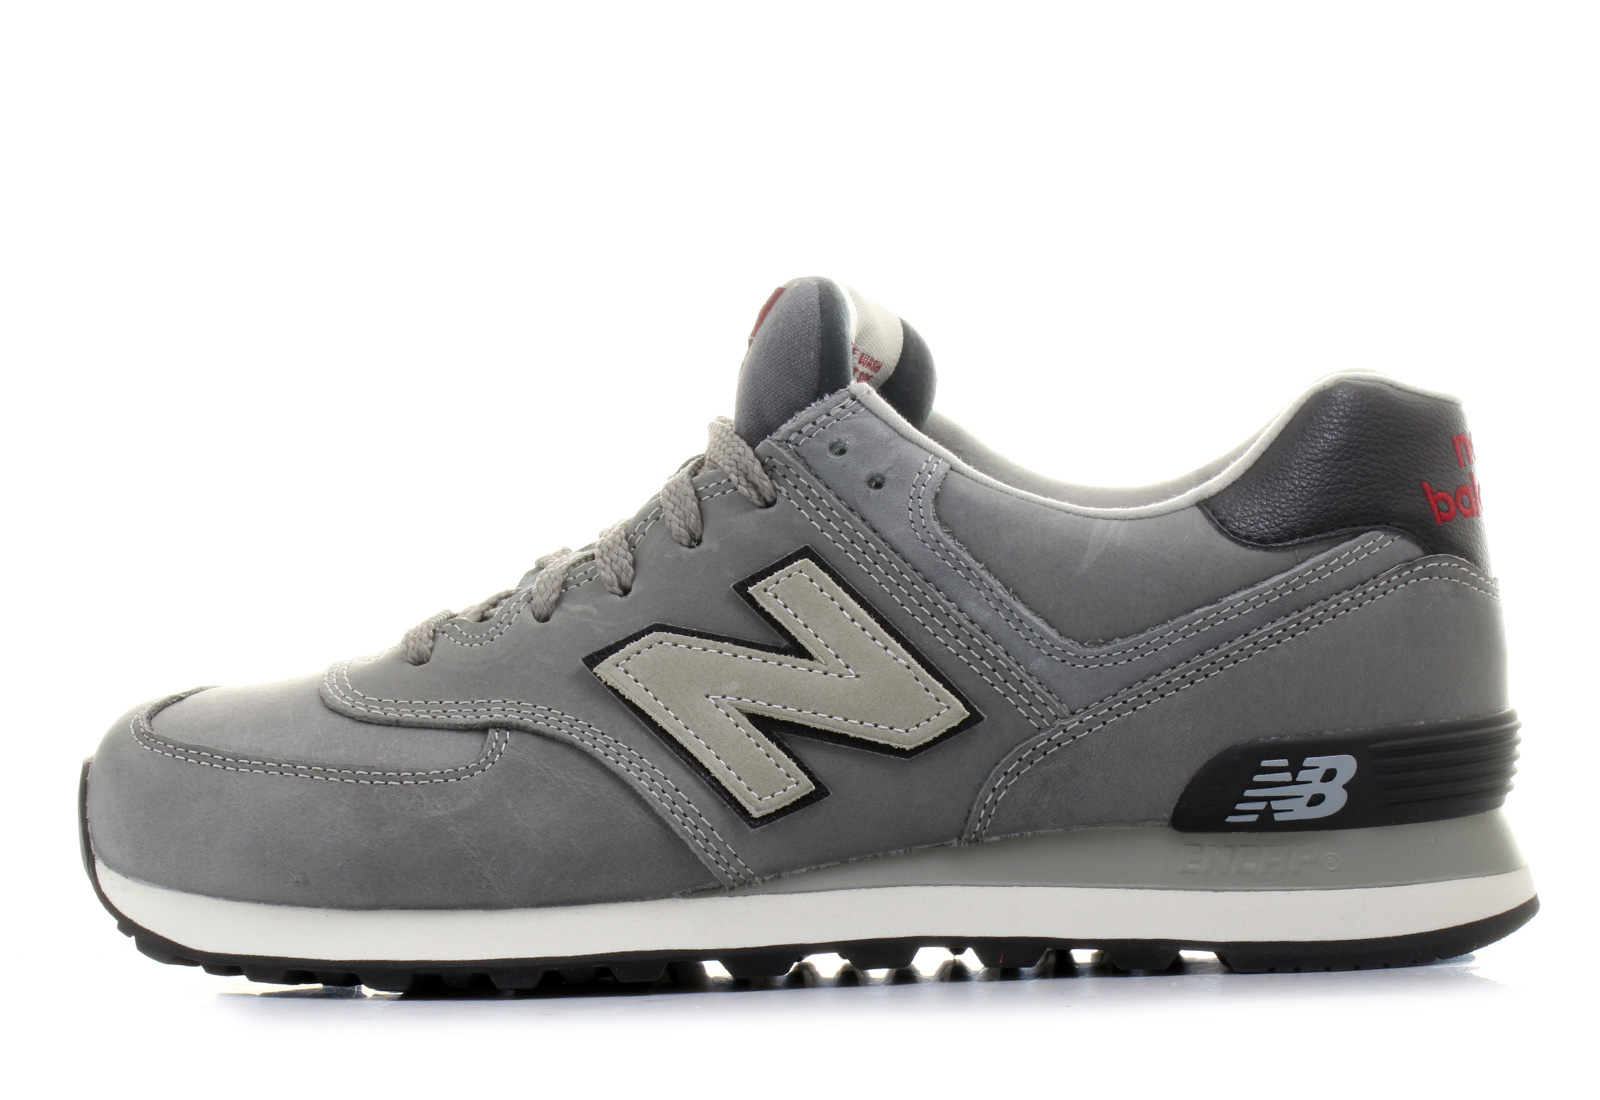 new balance shoes ml574 ml574ukg online shop for sneakers shoes and boots. Black Bedroom Furniture Sets. Home Design Ideas